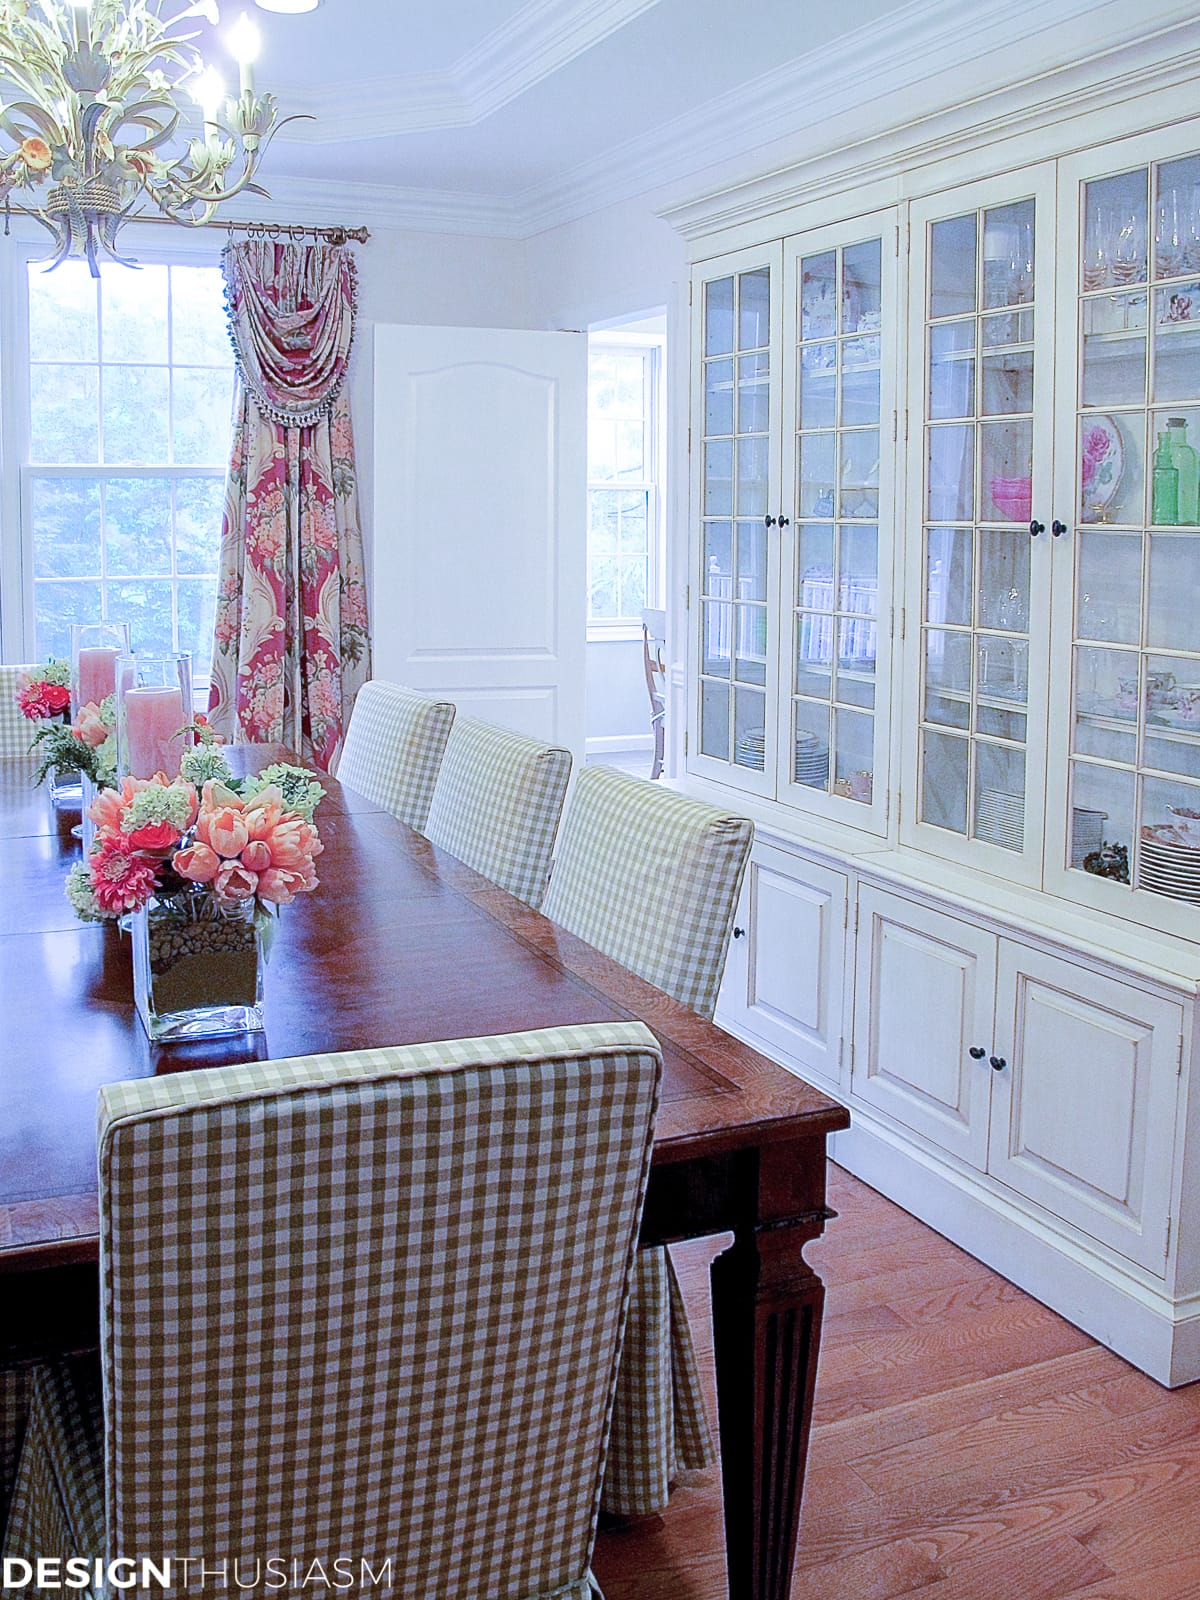 Dining room inspiration   Adding a rosy glow with blush pink - designthusiasm.com